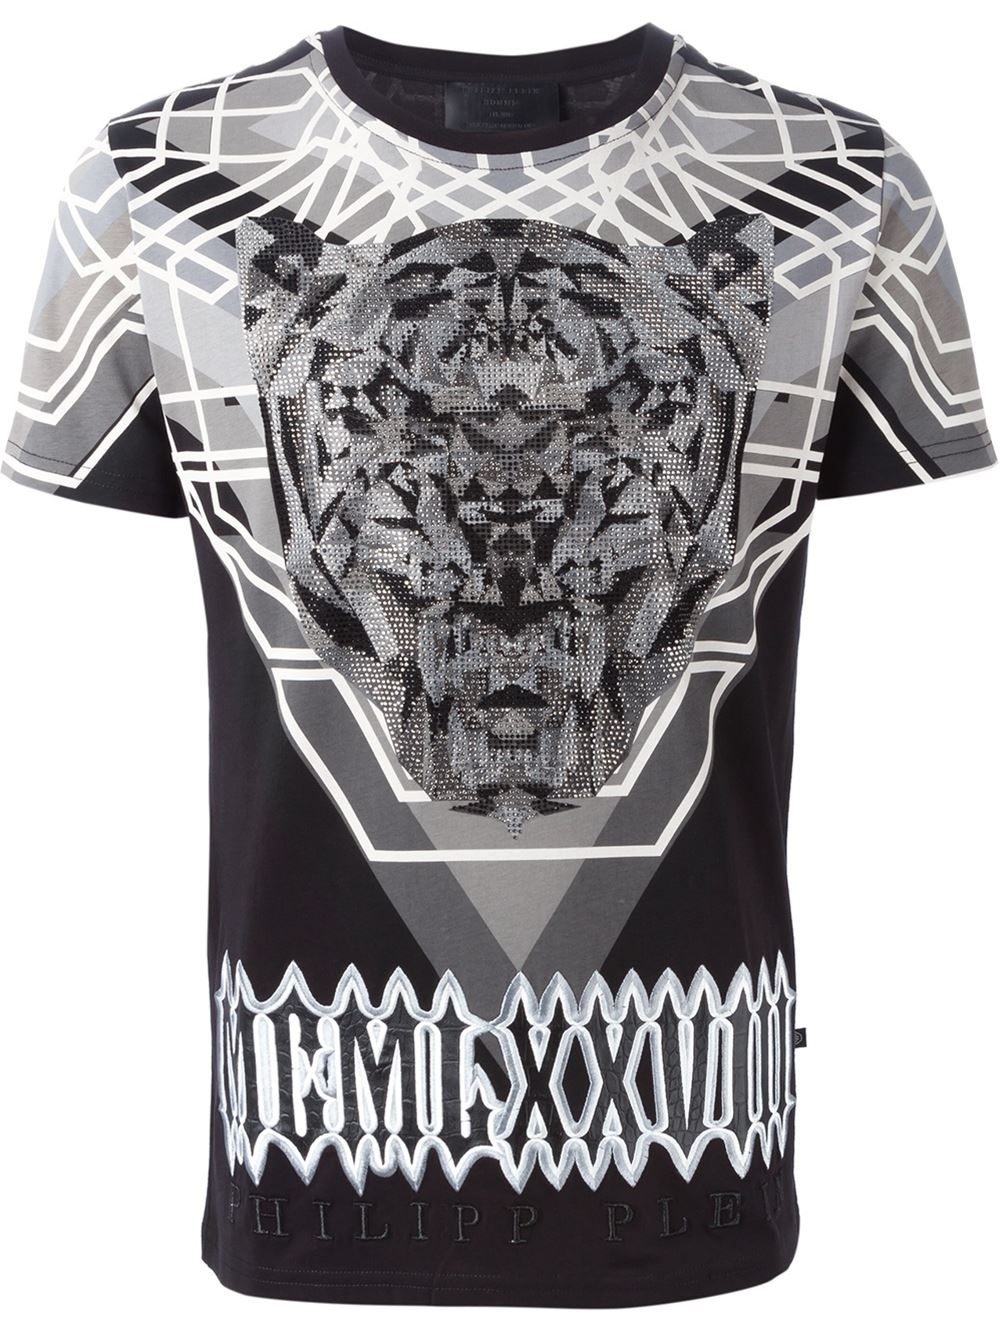 philipp plein 39 warrior 39 t shirt in black for men lyst. Black Bedroom Furniture Sets. Home Design Ideas